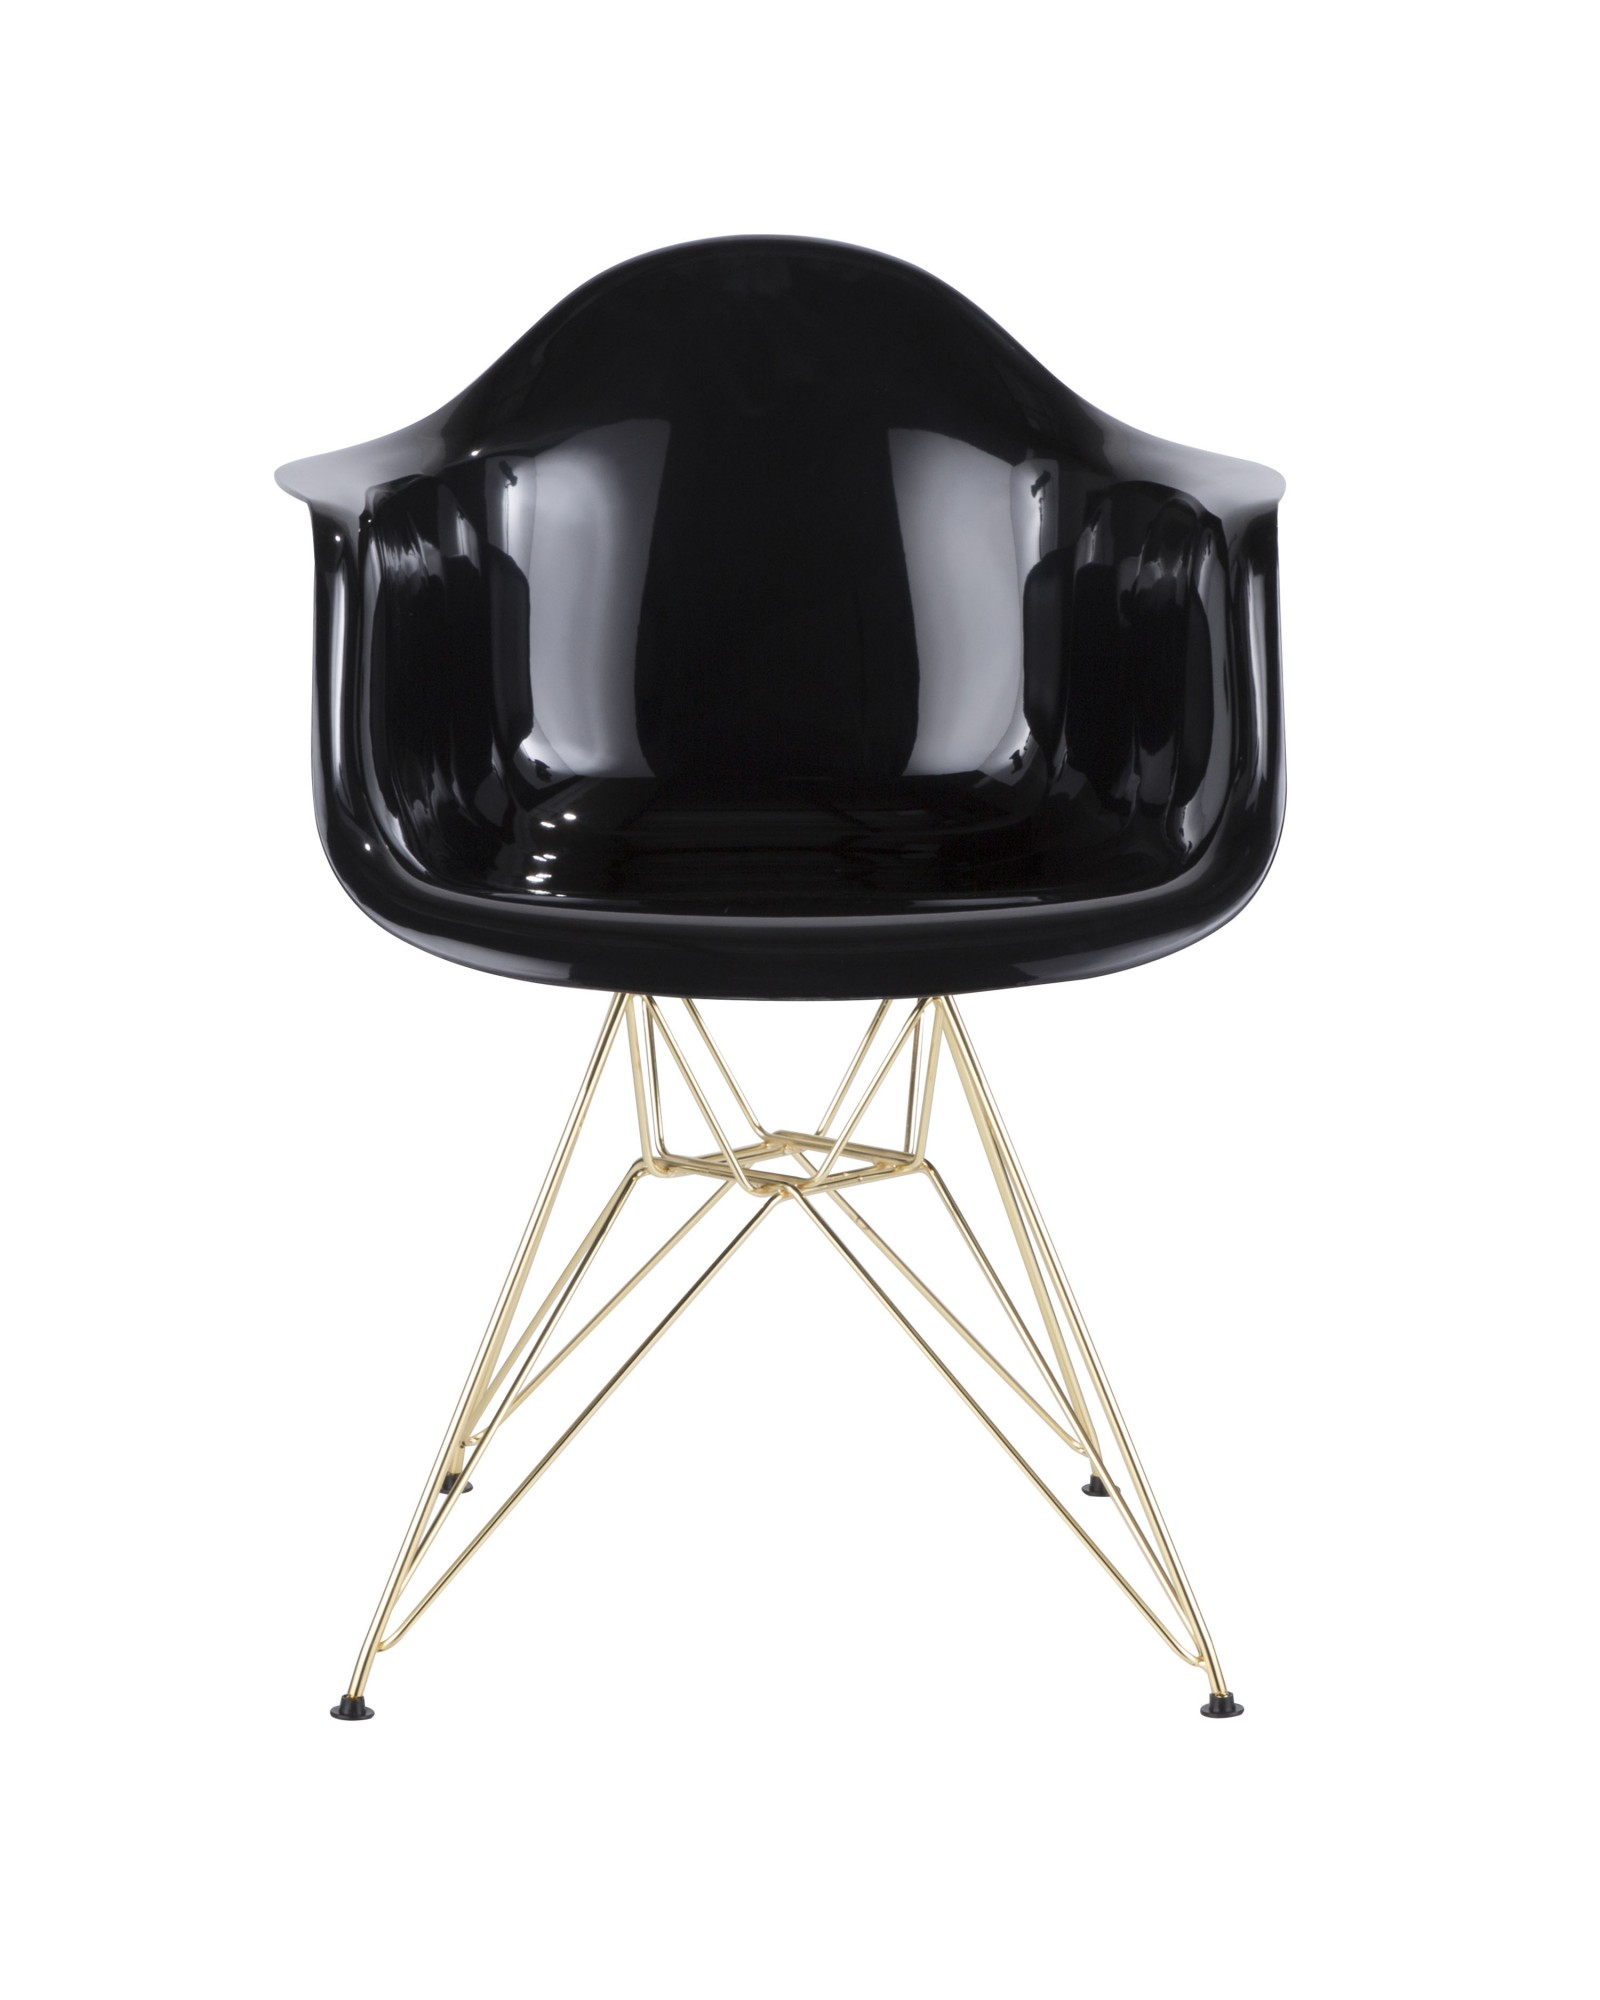 Neo Flair Contemporary Dining/Accent Chair in Black and Gold